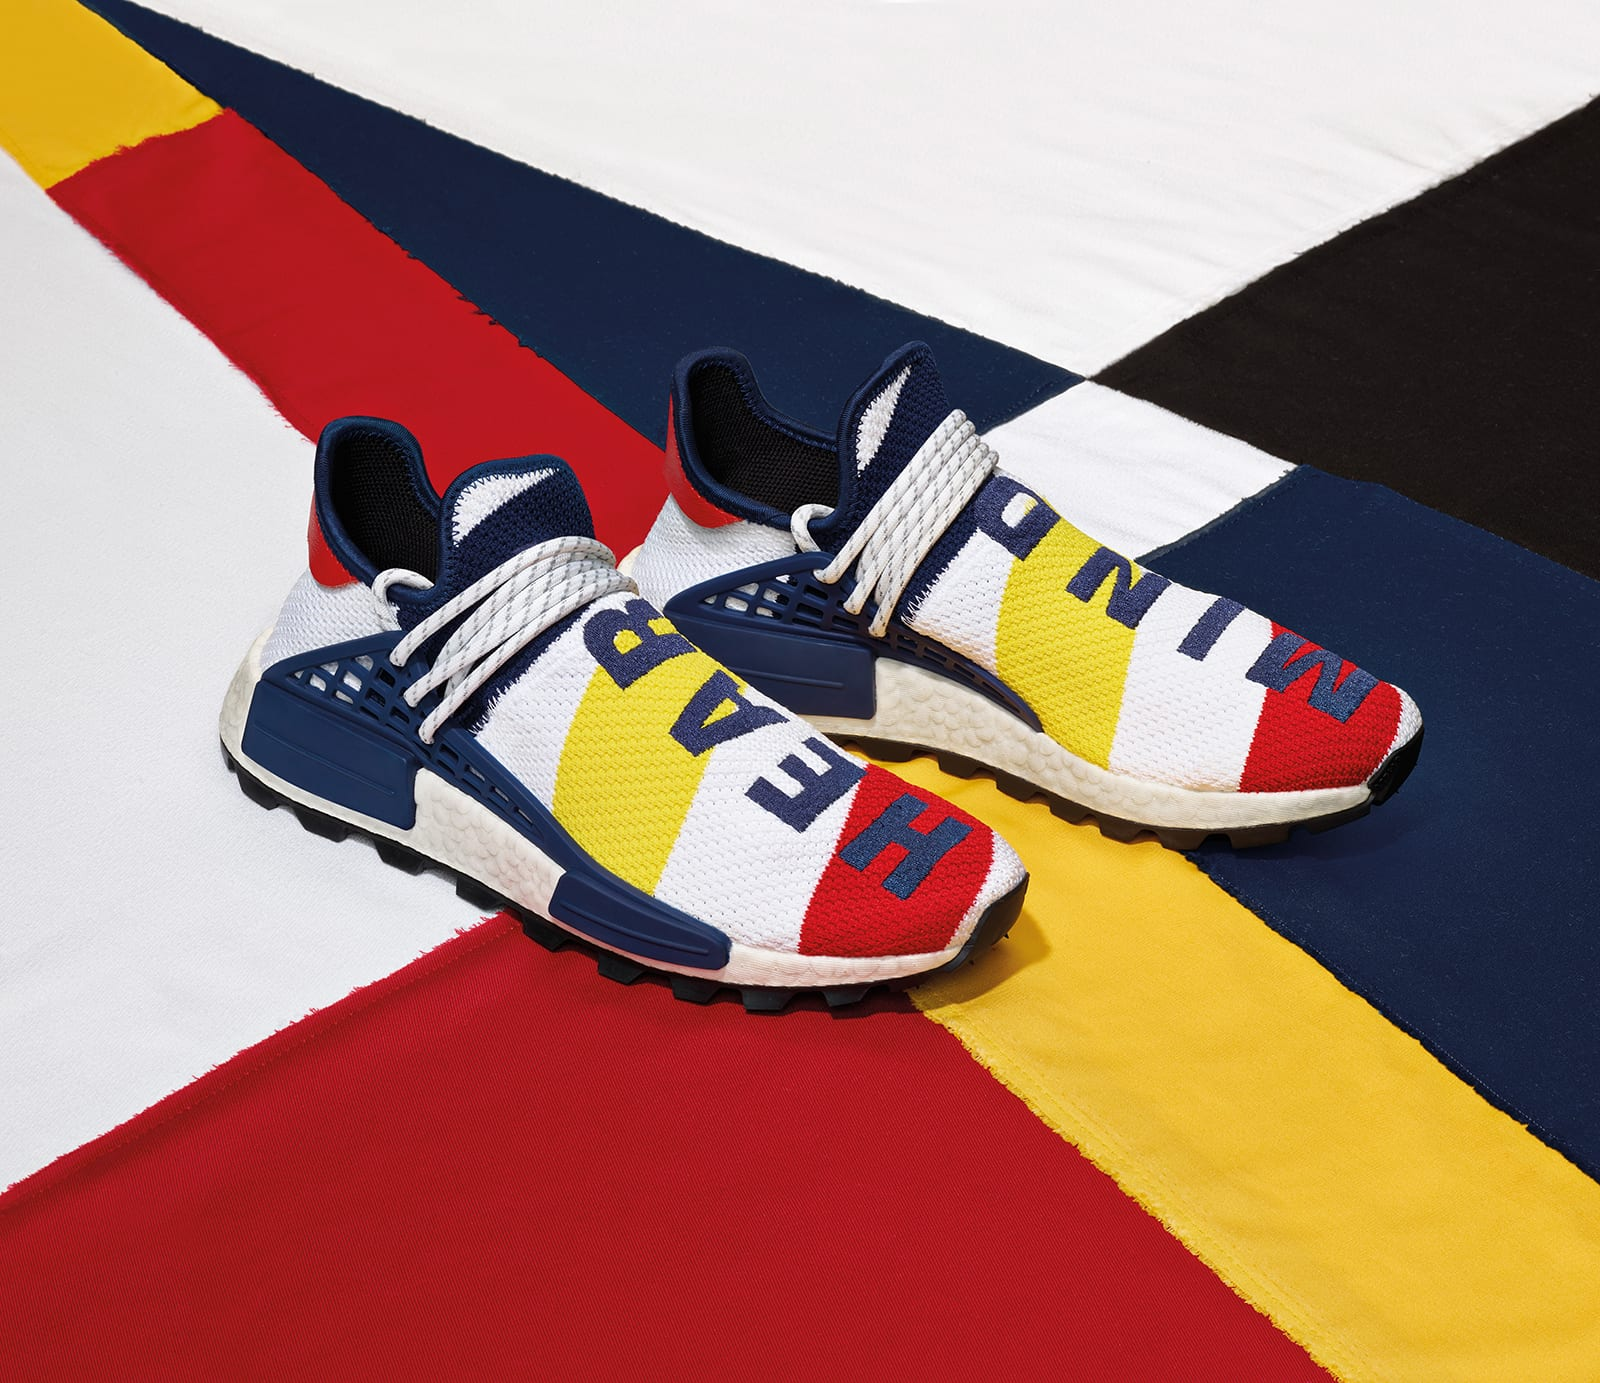 1937999383f45 For FW18 adidas Originals and Billionaire Boys Club draw on archive  collegiate detailing for inspiration. Taking cues from the striped motifs  found ...